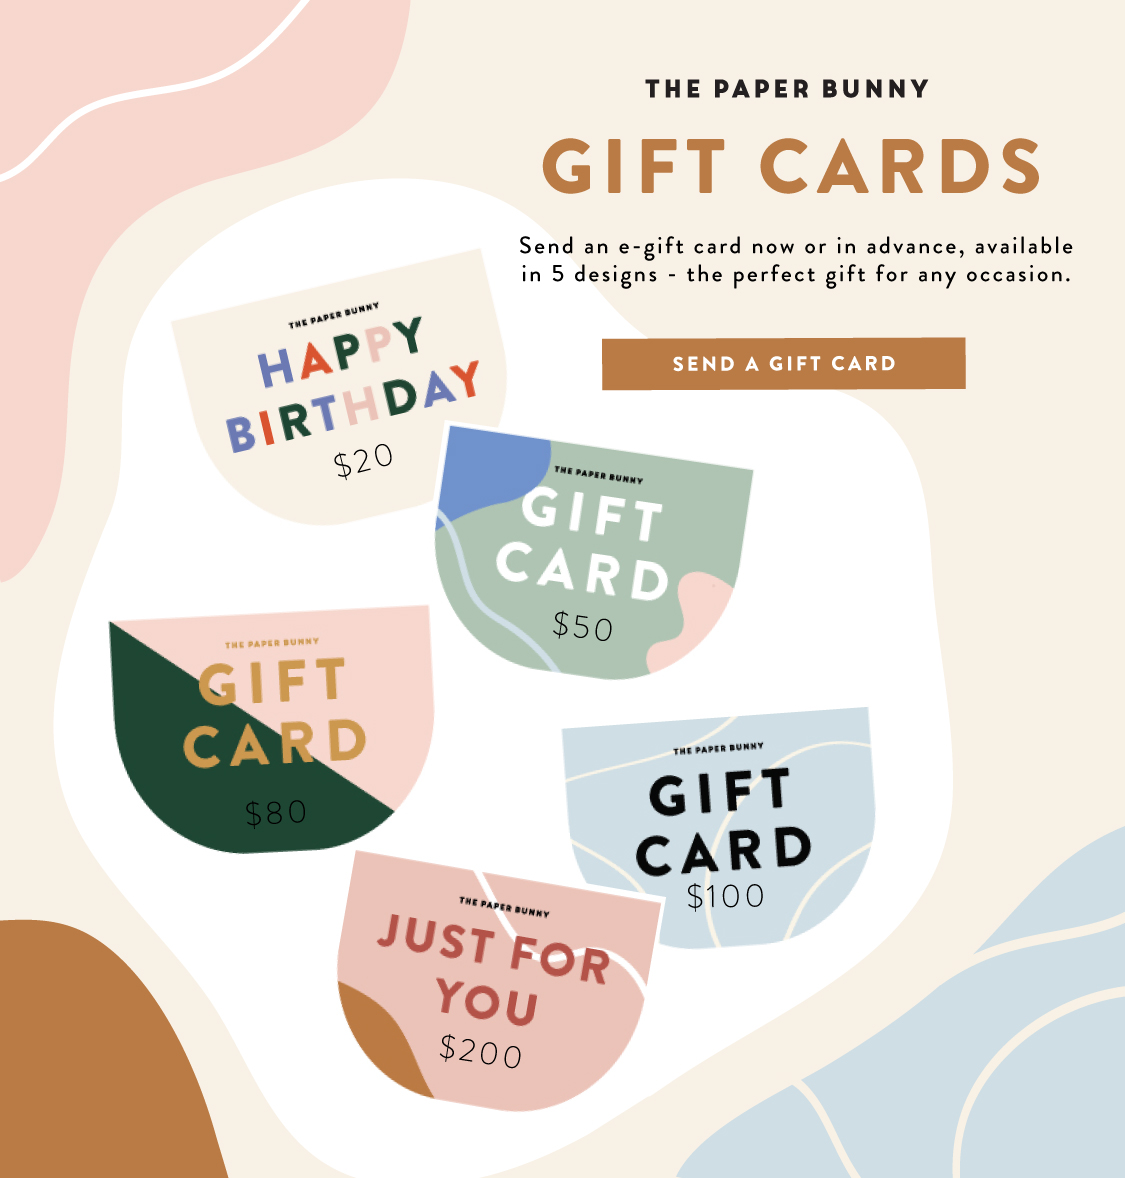 The Paper Bunny Gift Cards